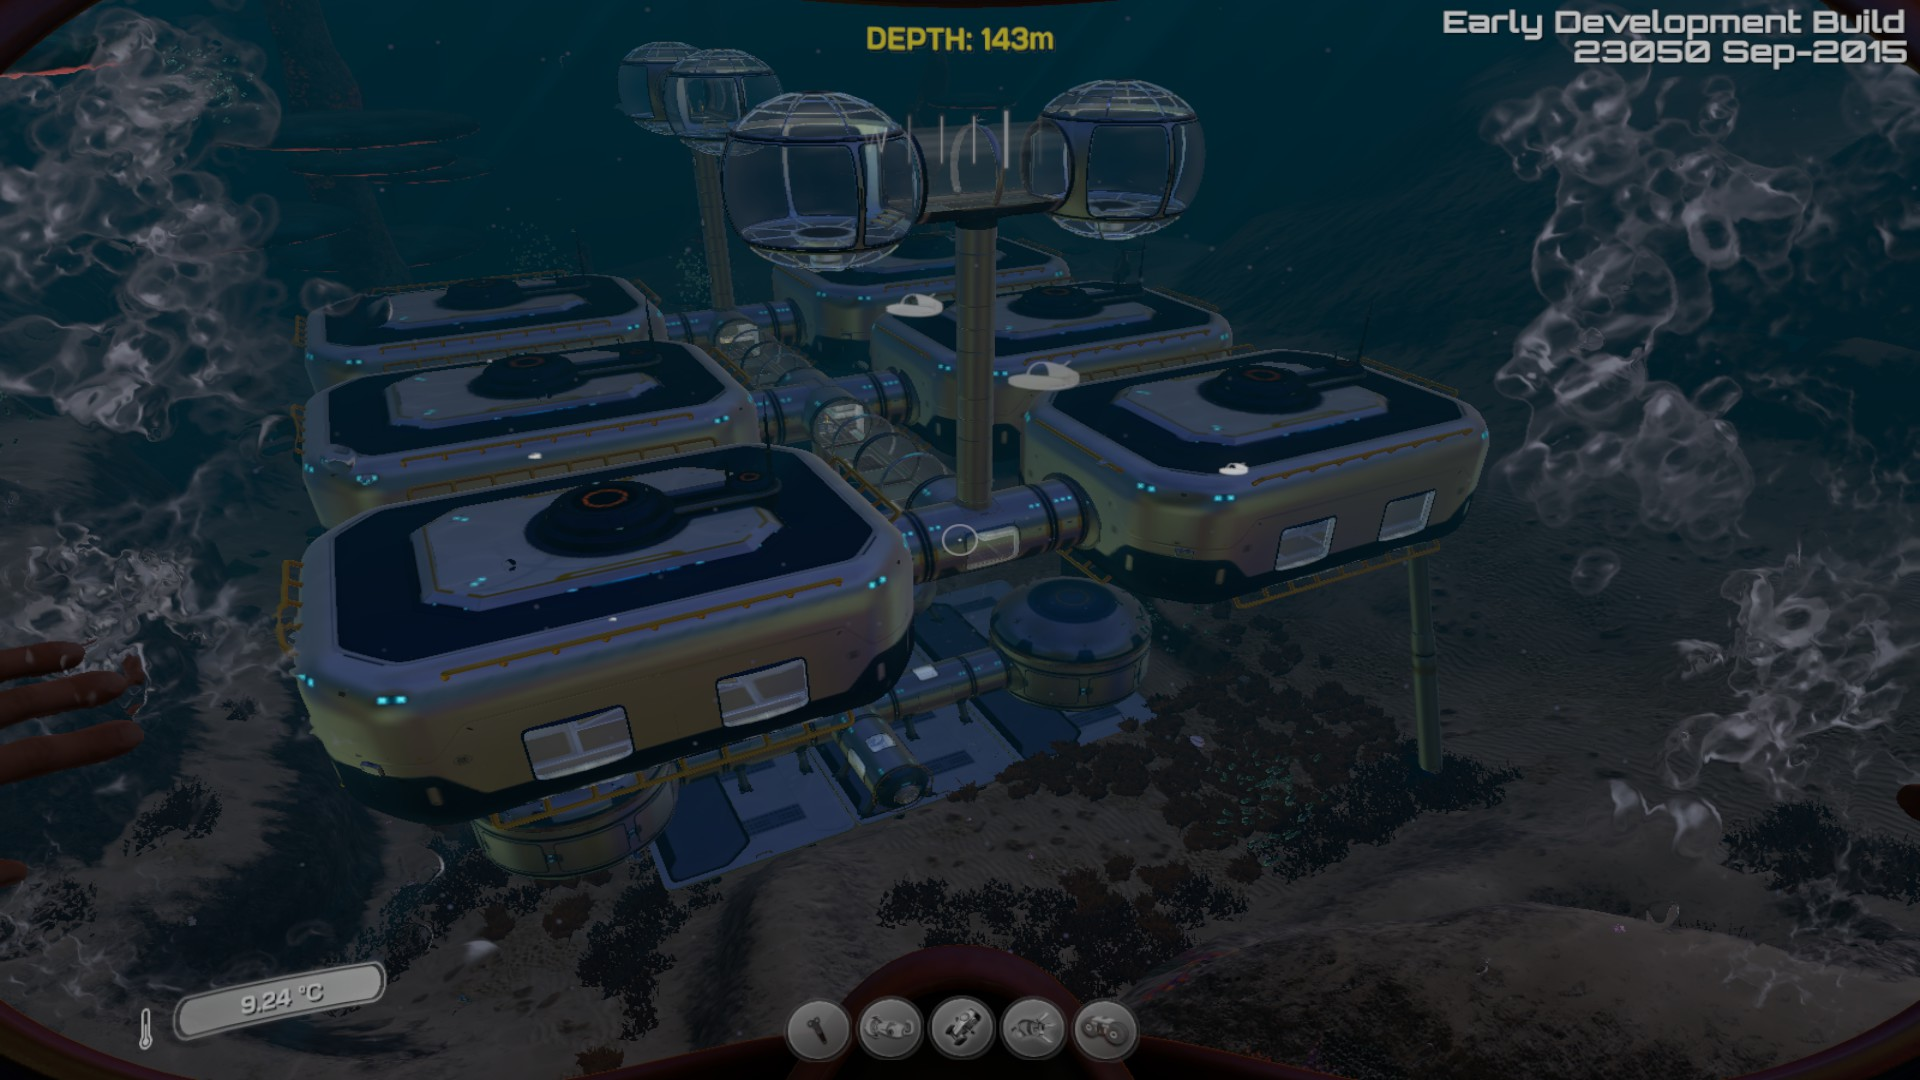 Steam community guide subnautica seabase planning resource steam community guide subnautica seabase planning resource and hull strength calculator updated 26082016 malvernweather Images